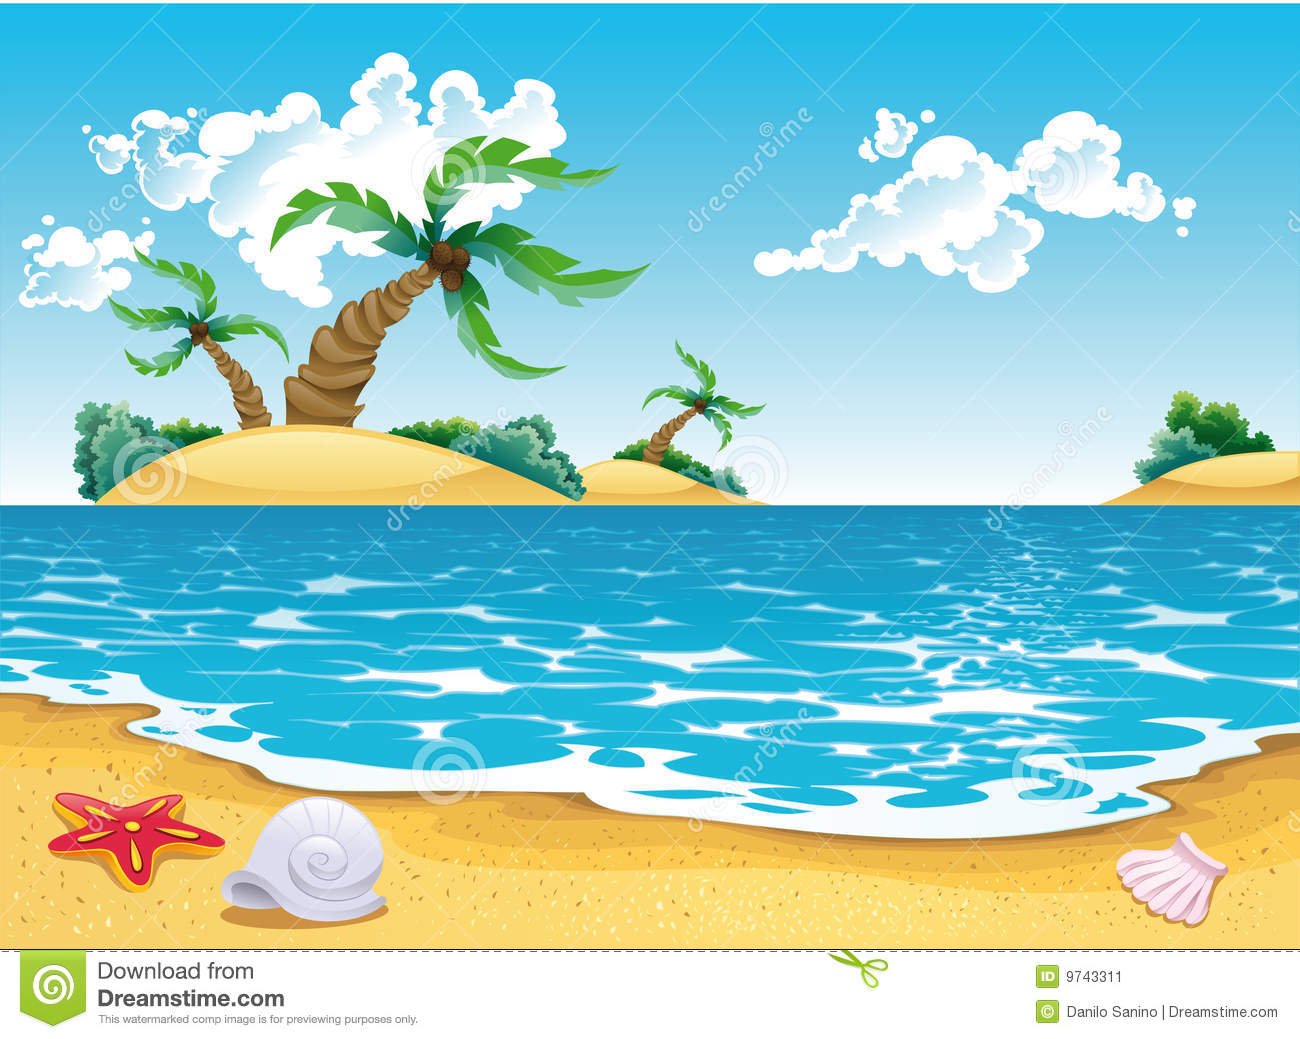 Seascape clipart #15, Download drawings